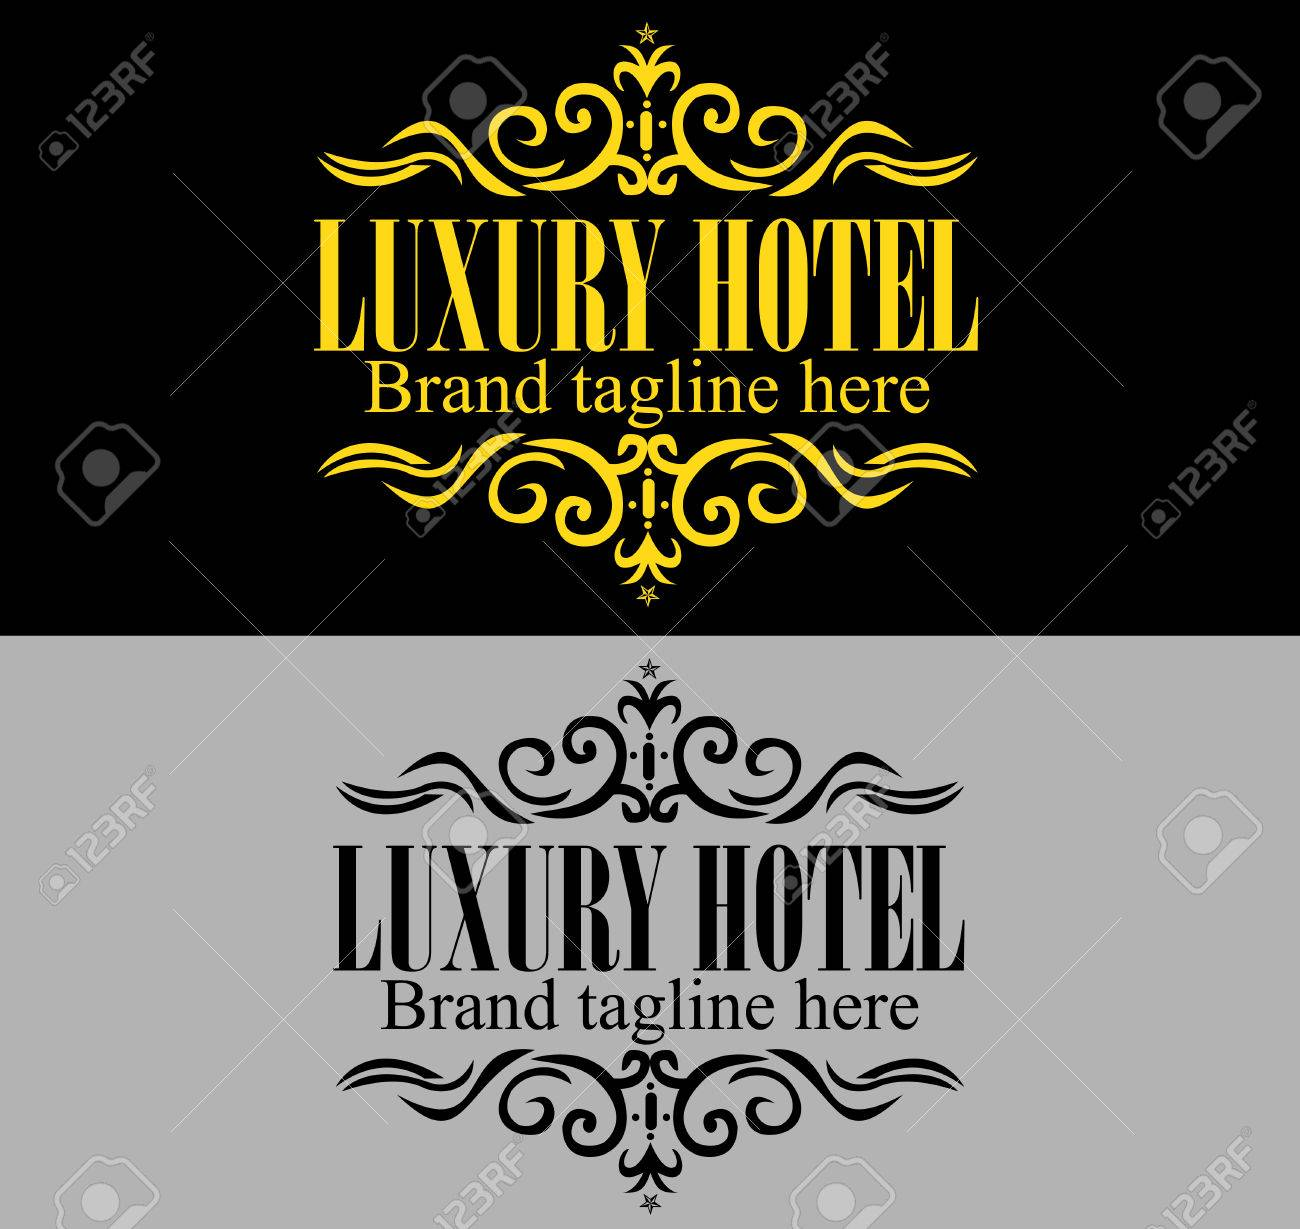 Luxurious Royal Logo Template Suitable For Businesses And Product ...